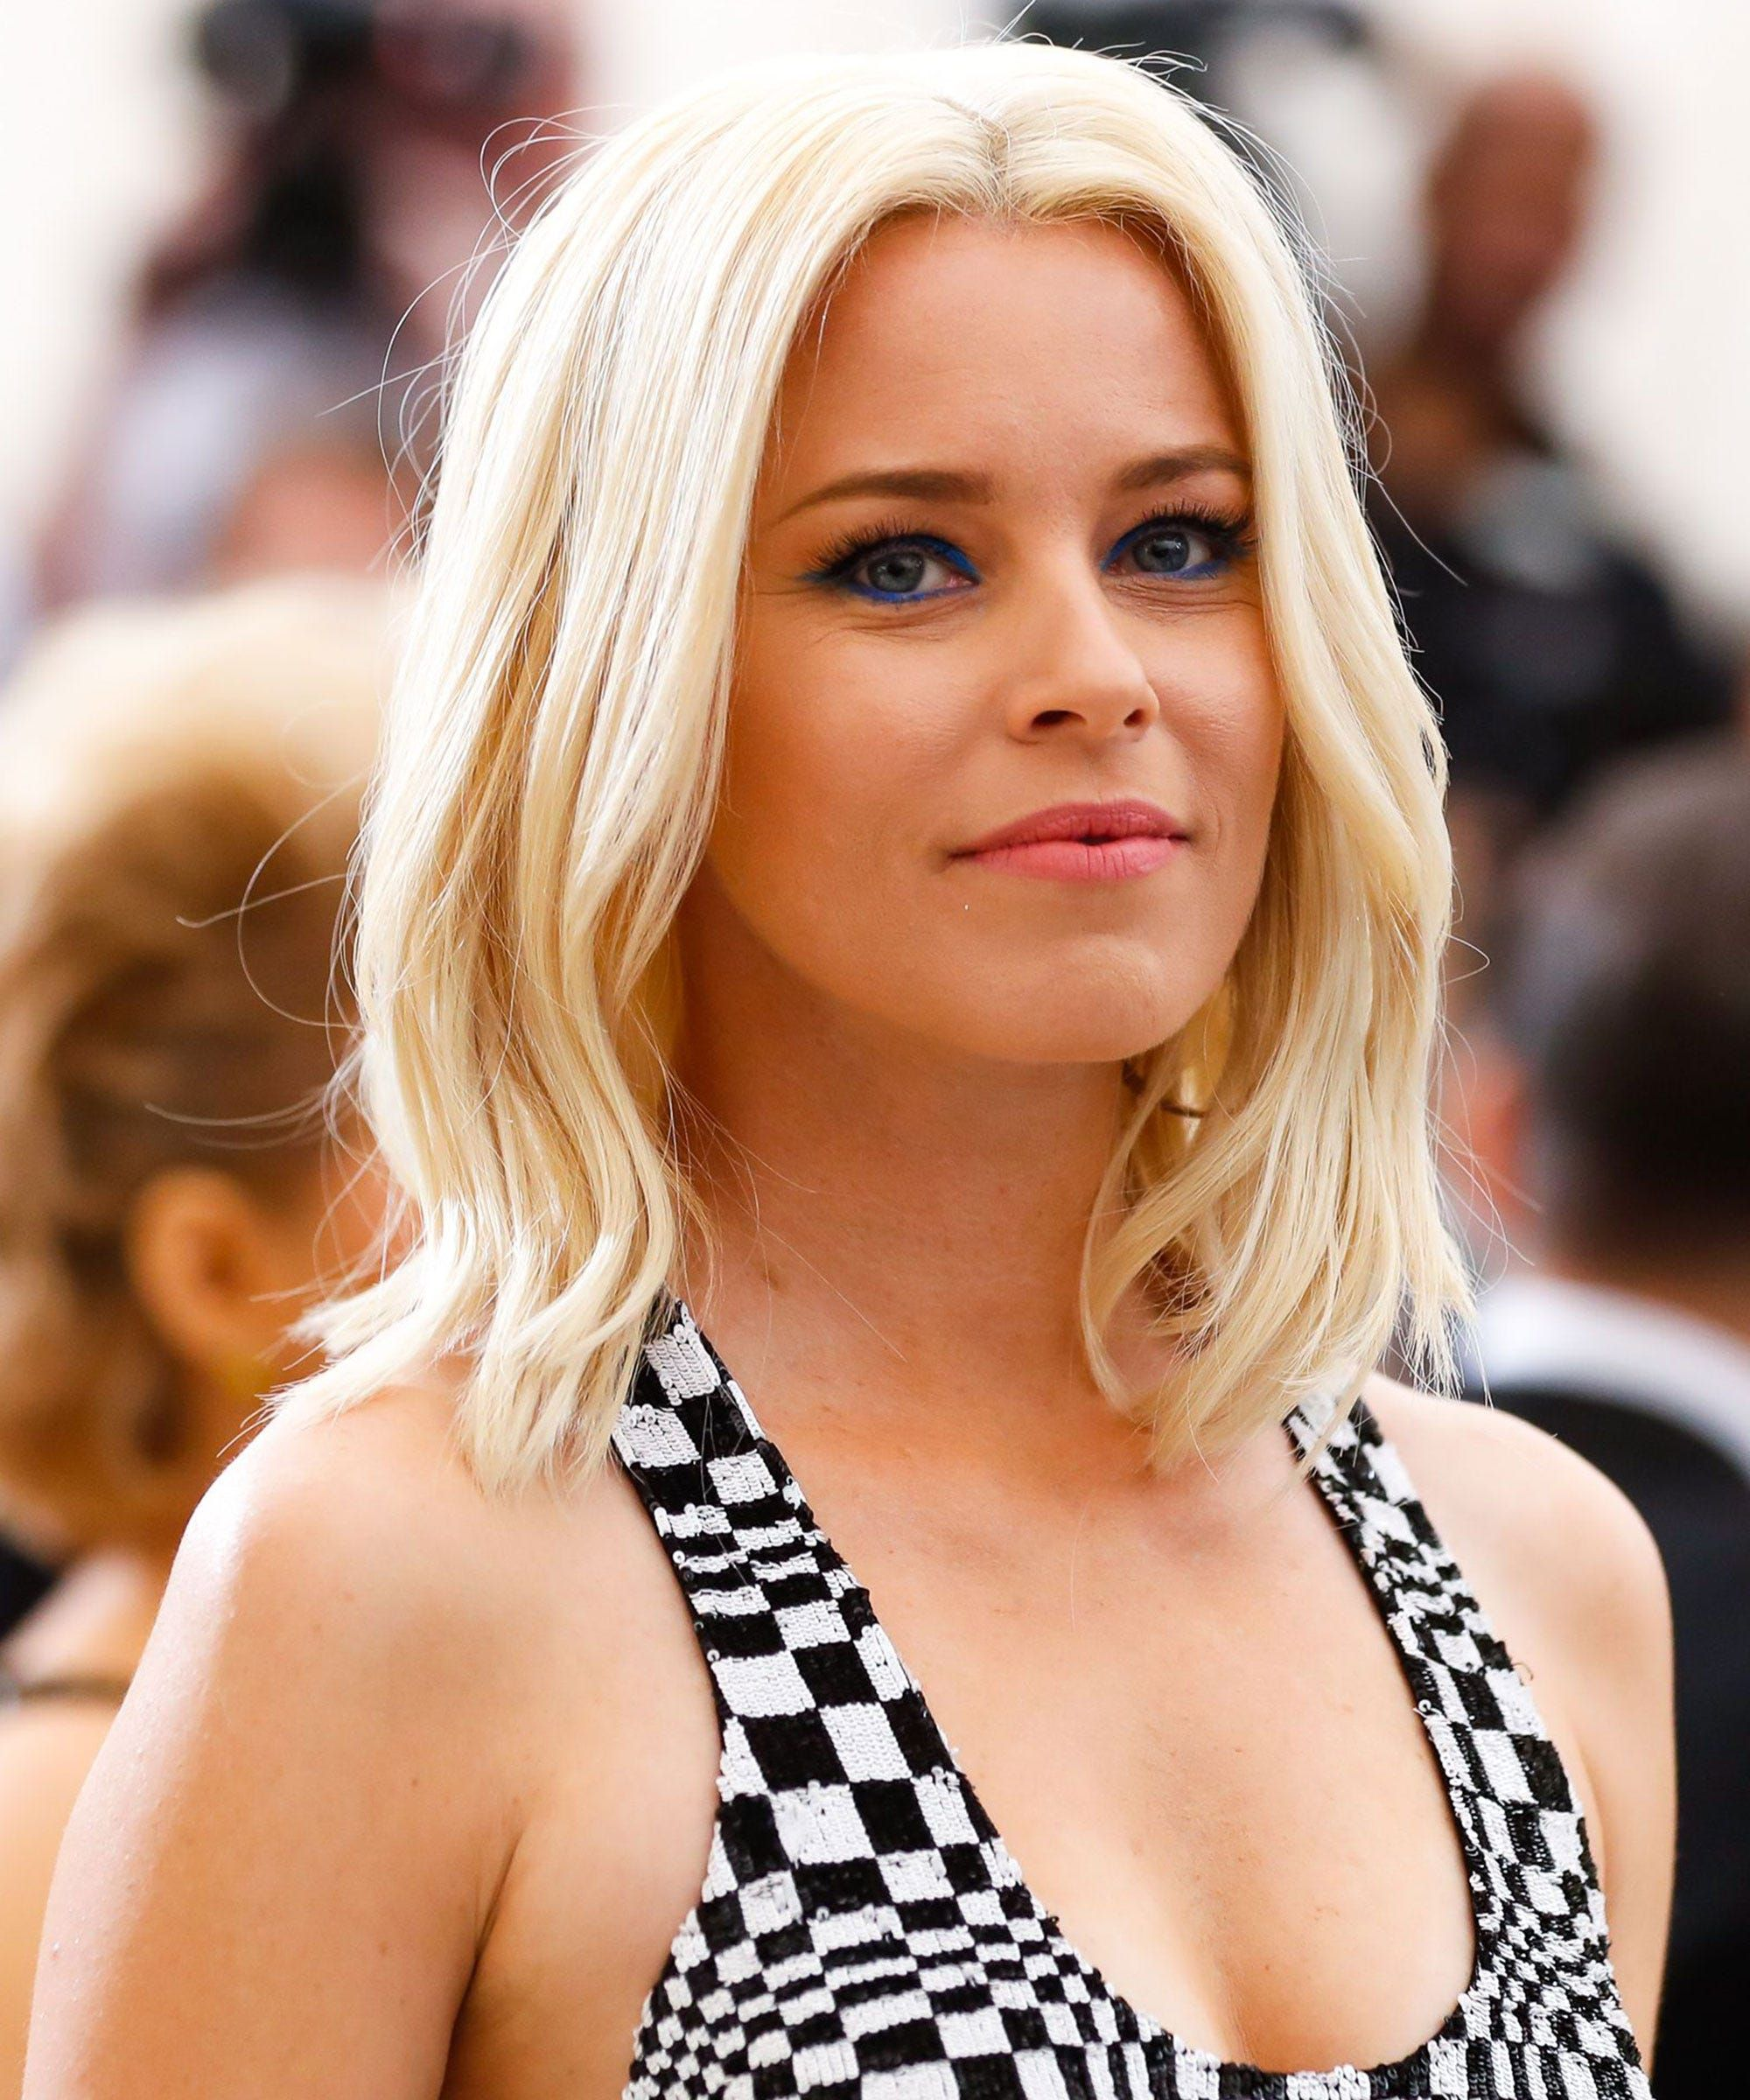 Elizabeth Banks Just Called Out Steven Spielberg For His Lack Of Female Roles